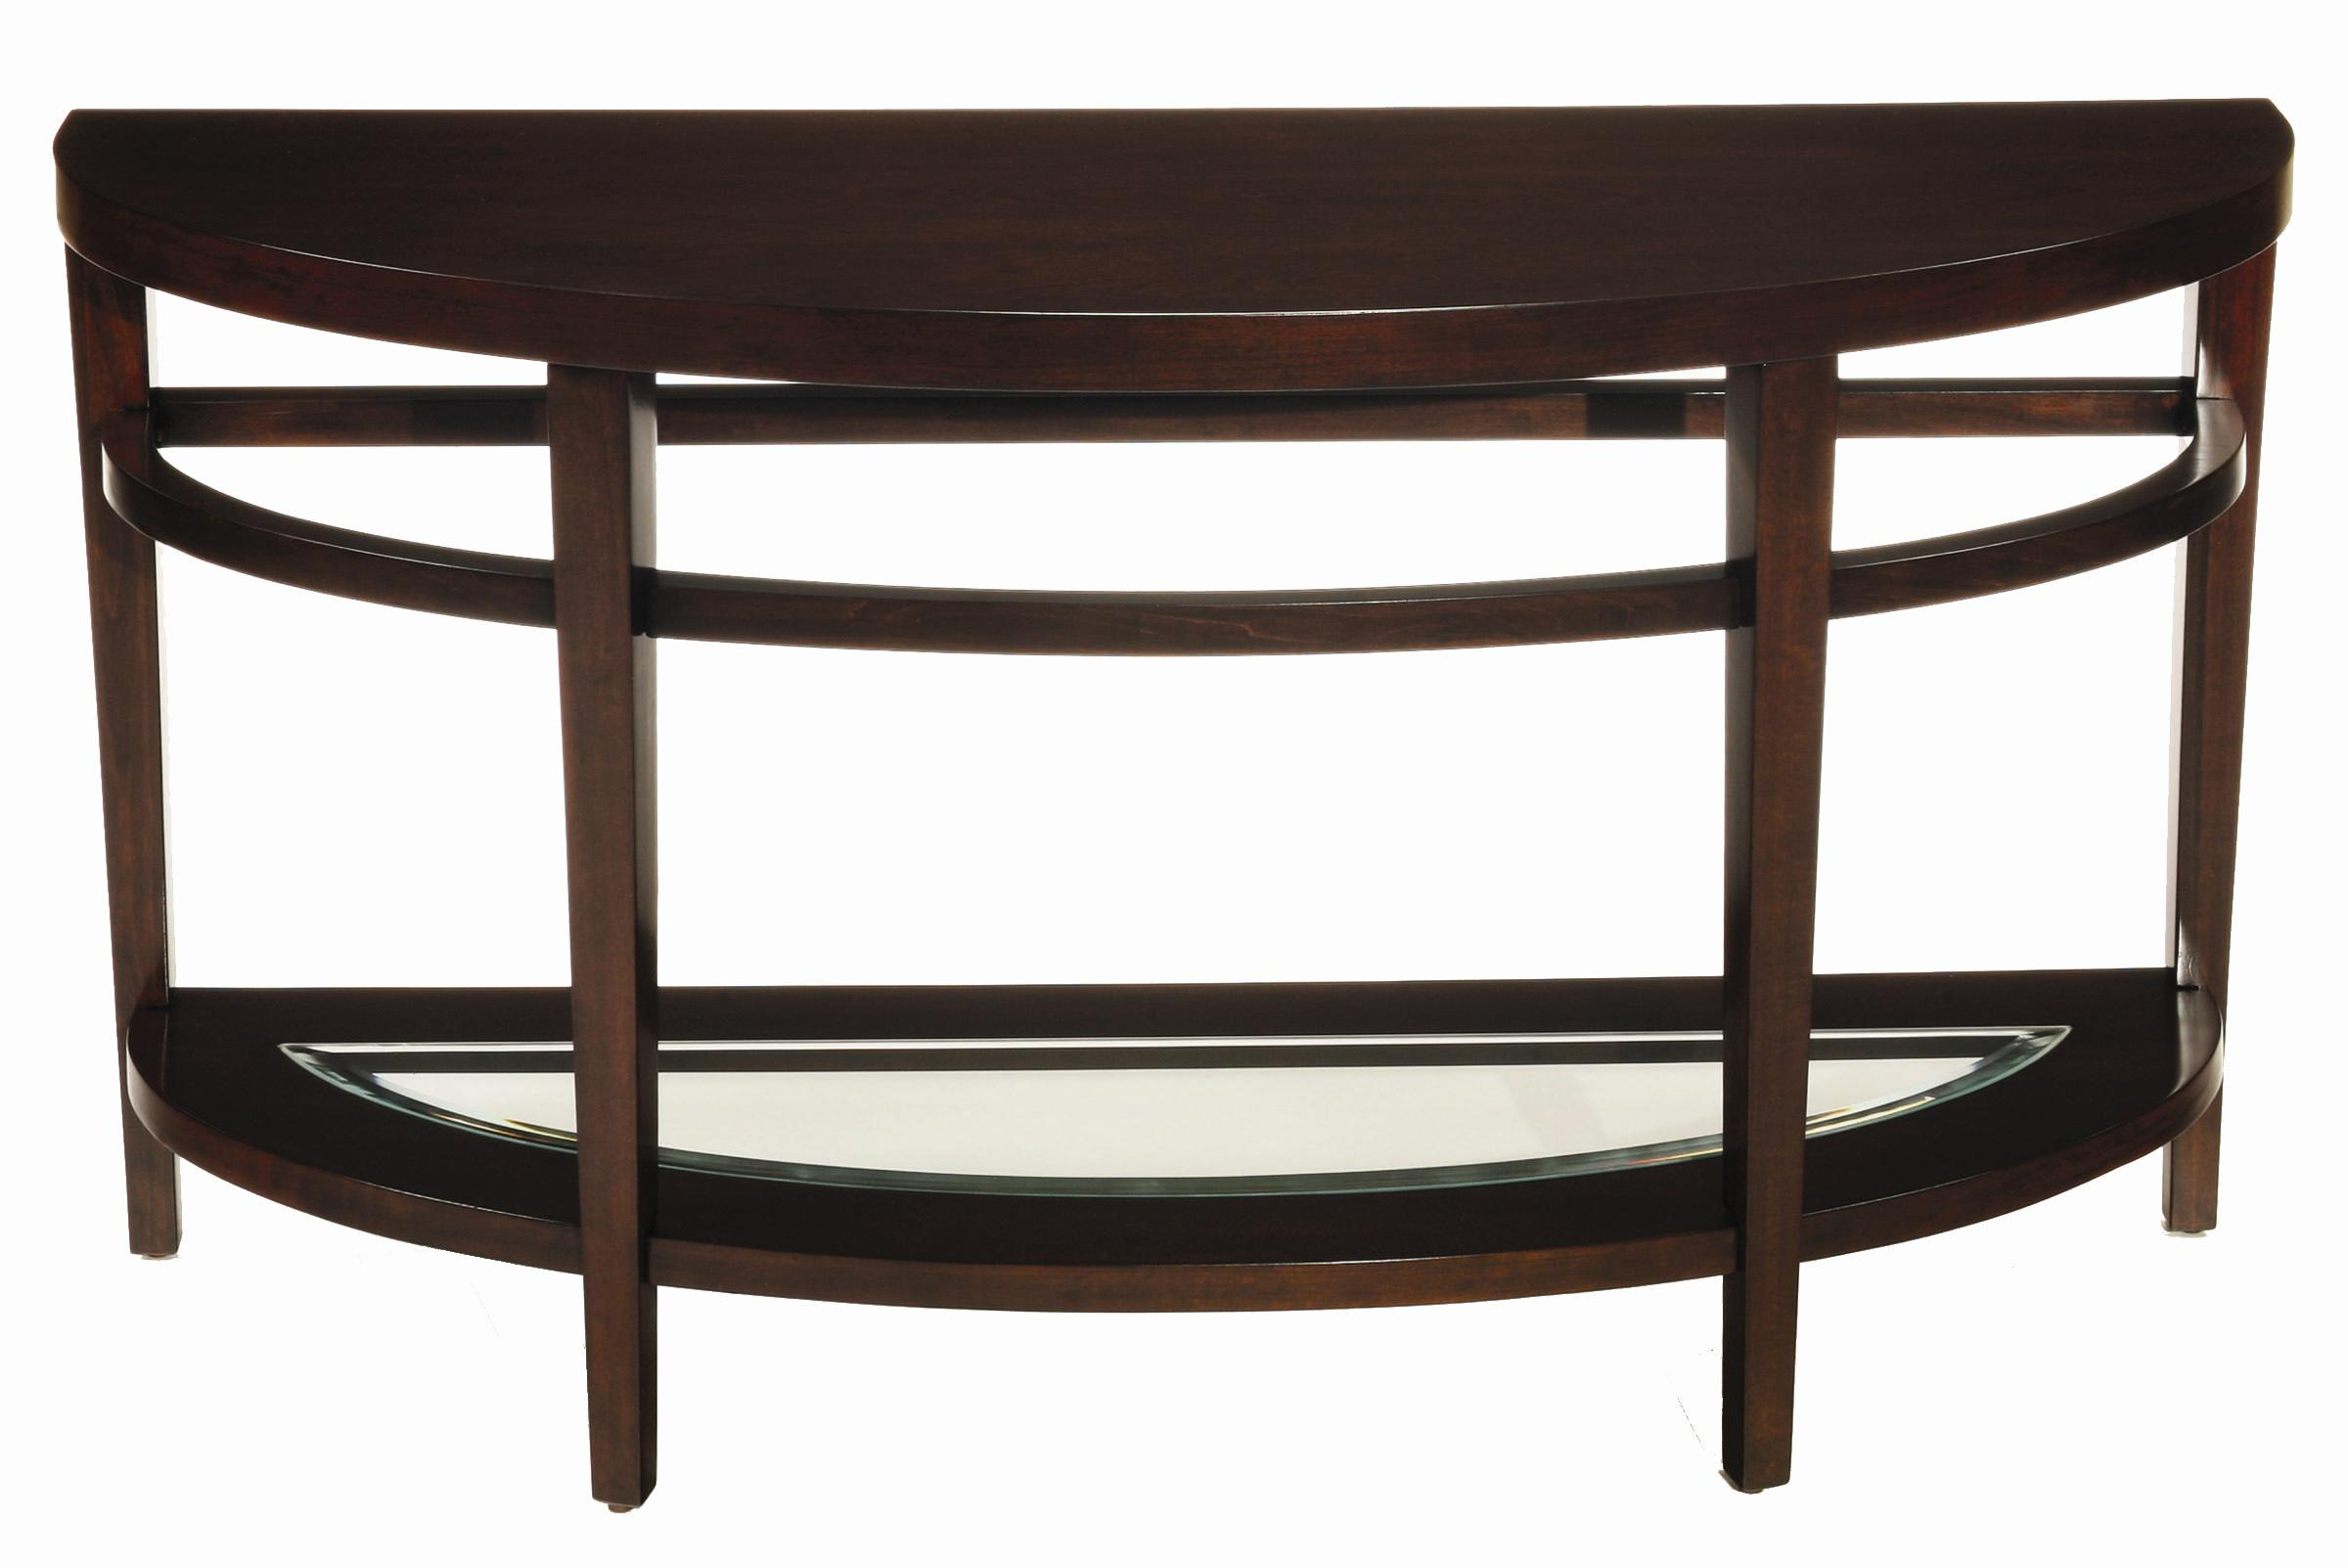 Atwell Atwell Ave Sofa Table by Hammary at Morris Home